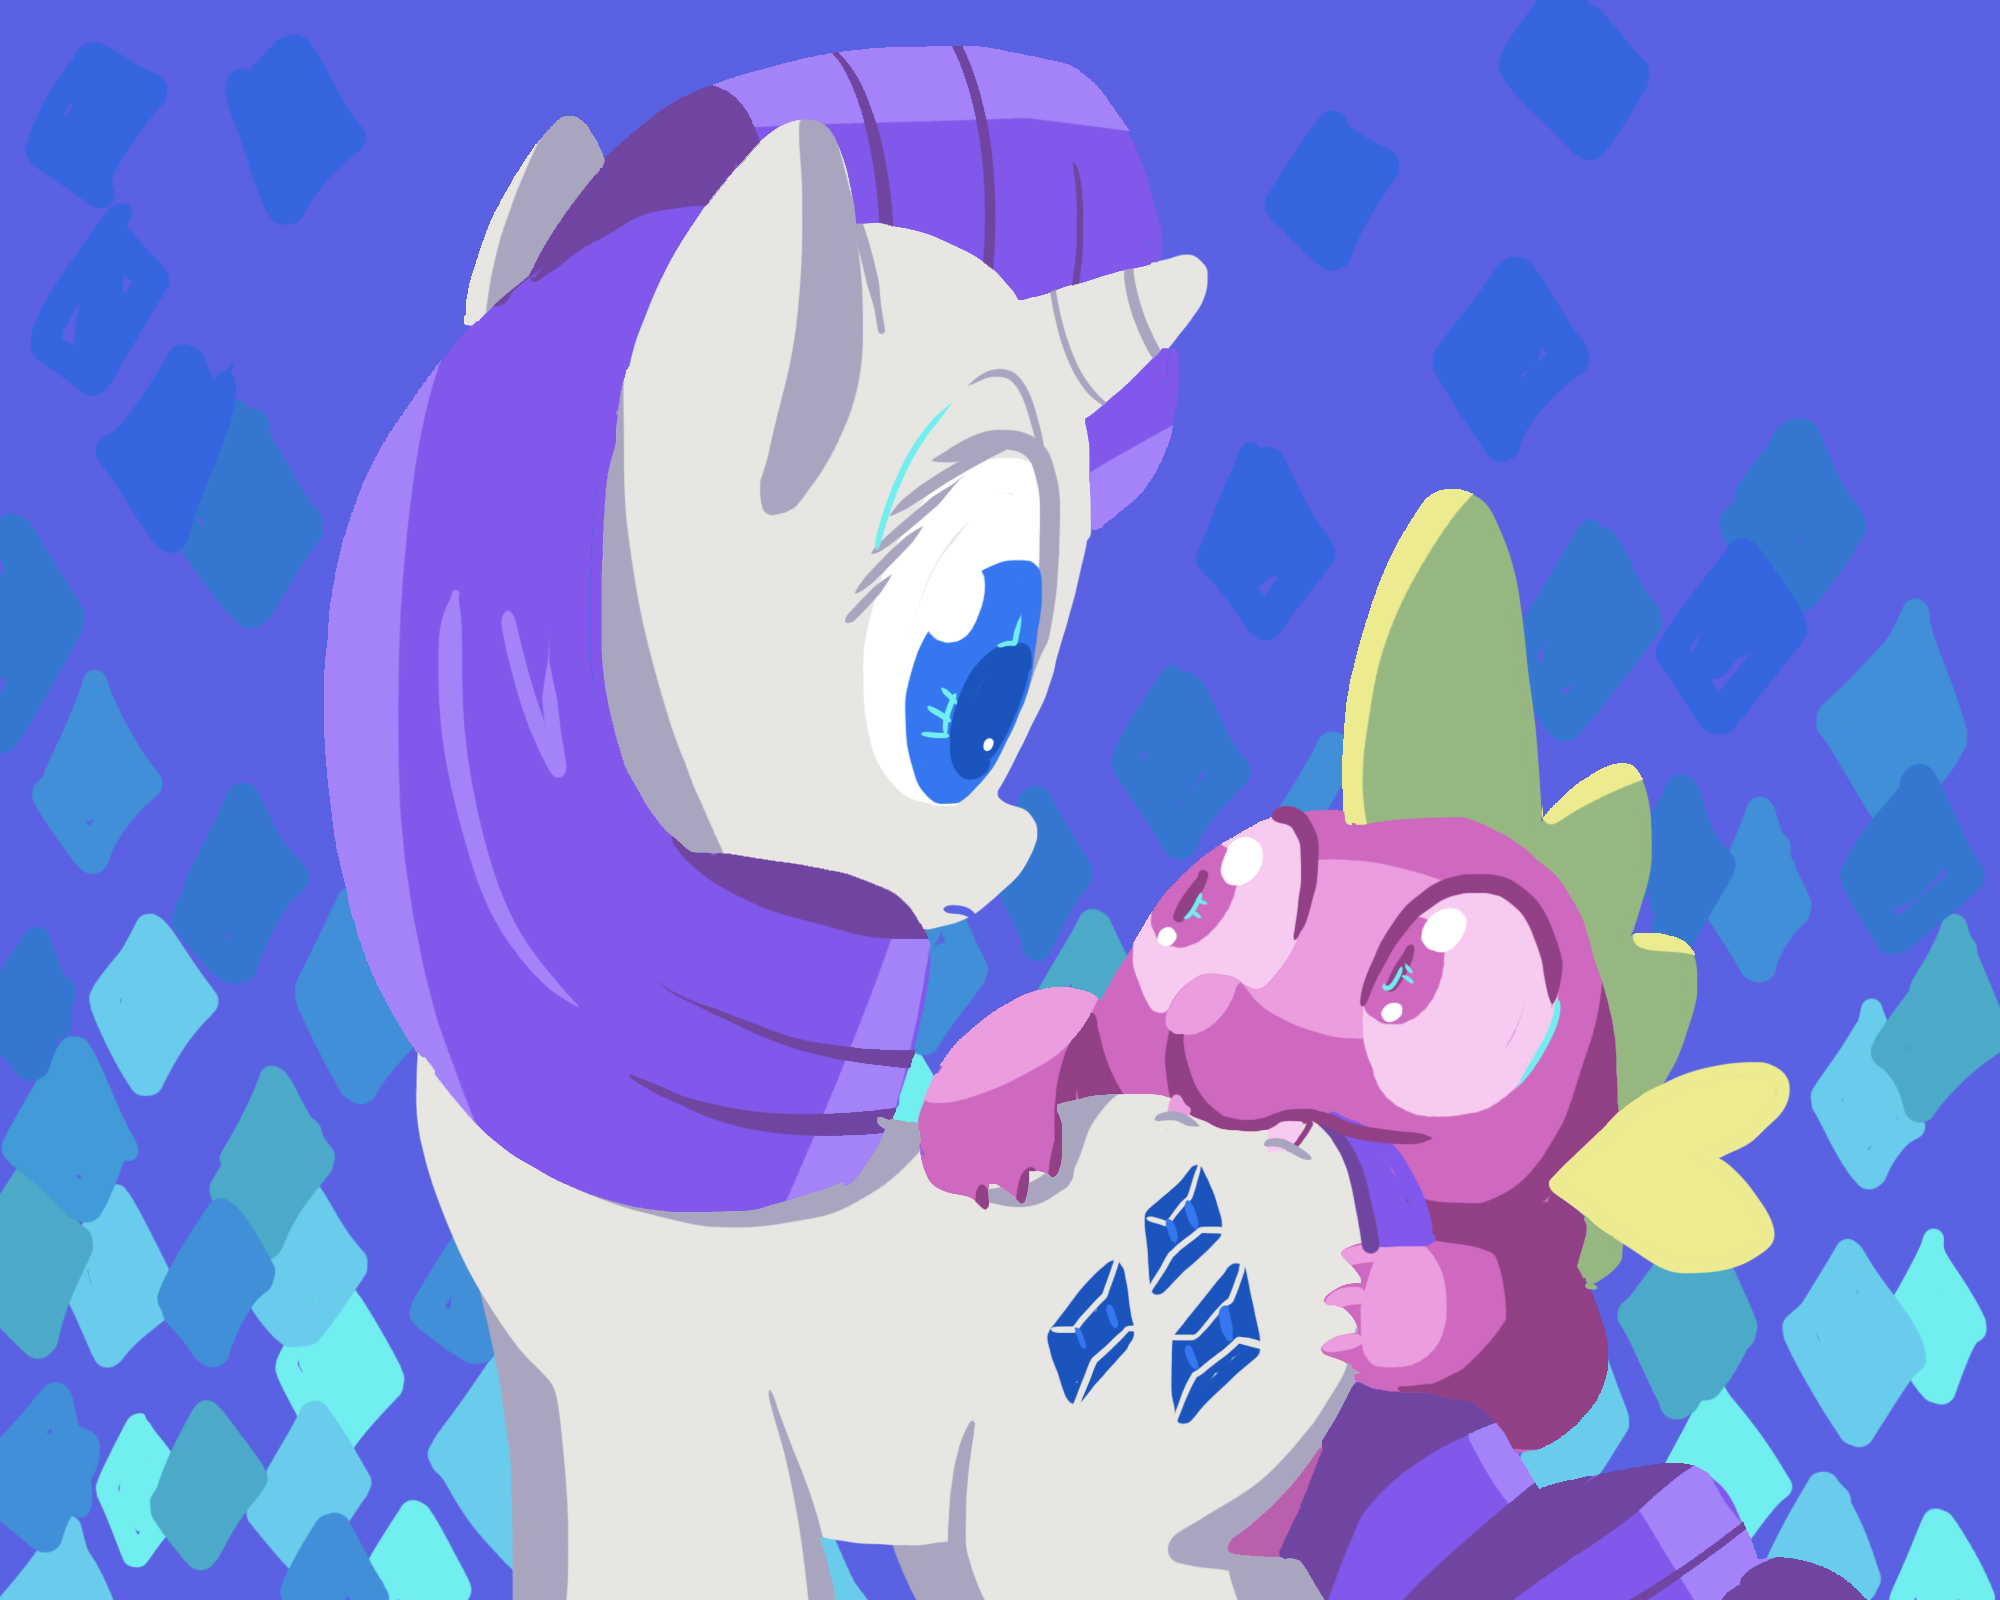 diamond t by vs on deviantart request rarity nightmare art tiara